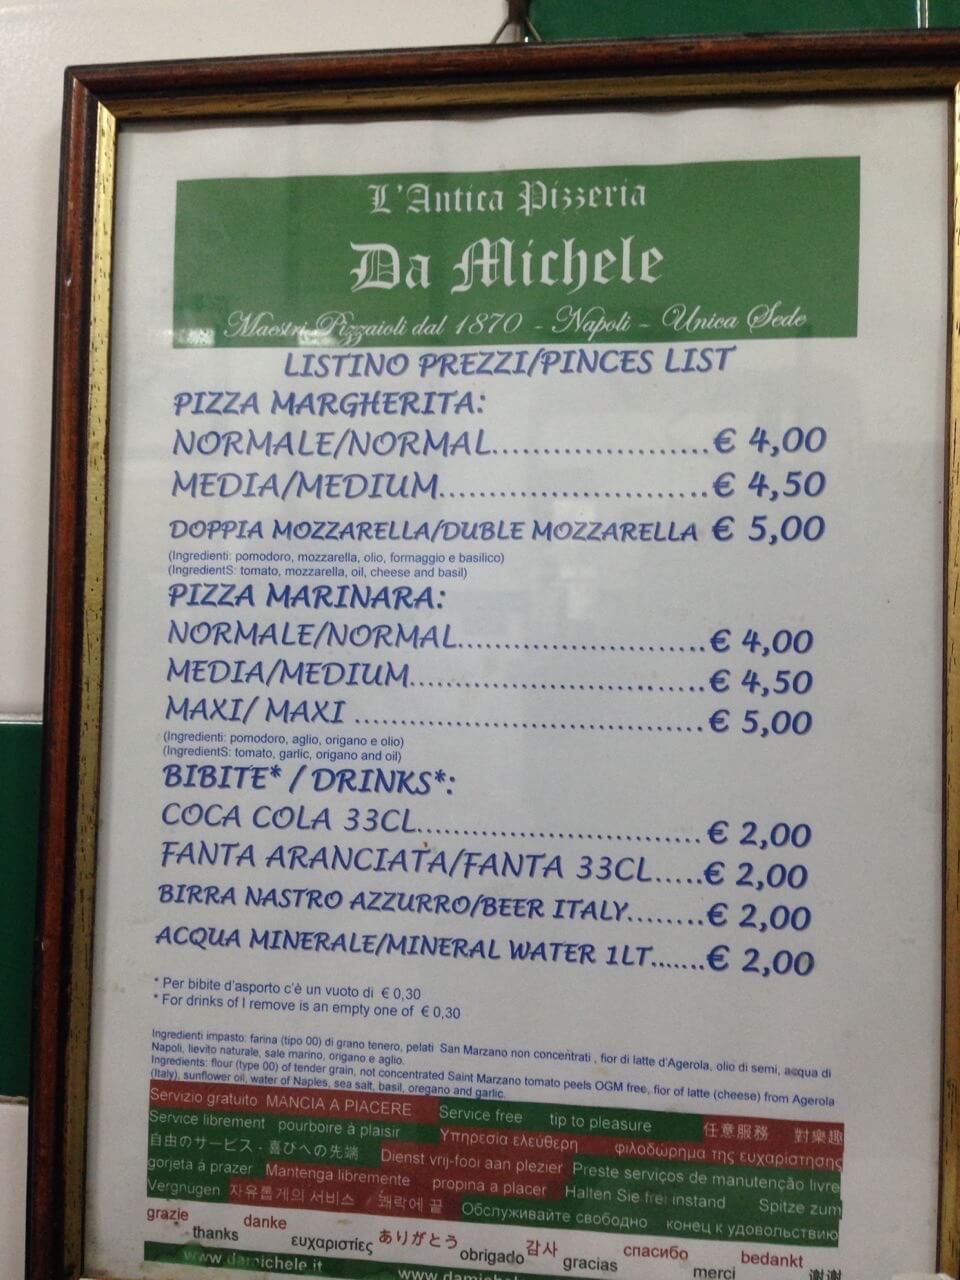 Price list Da Michele, Naples. (Even a bit more expensive than most places!)